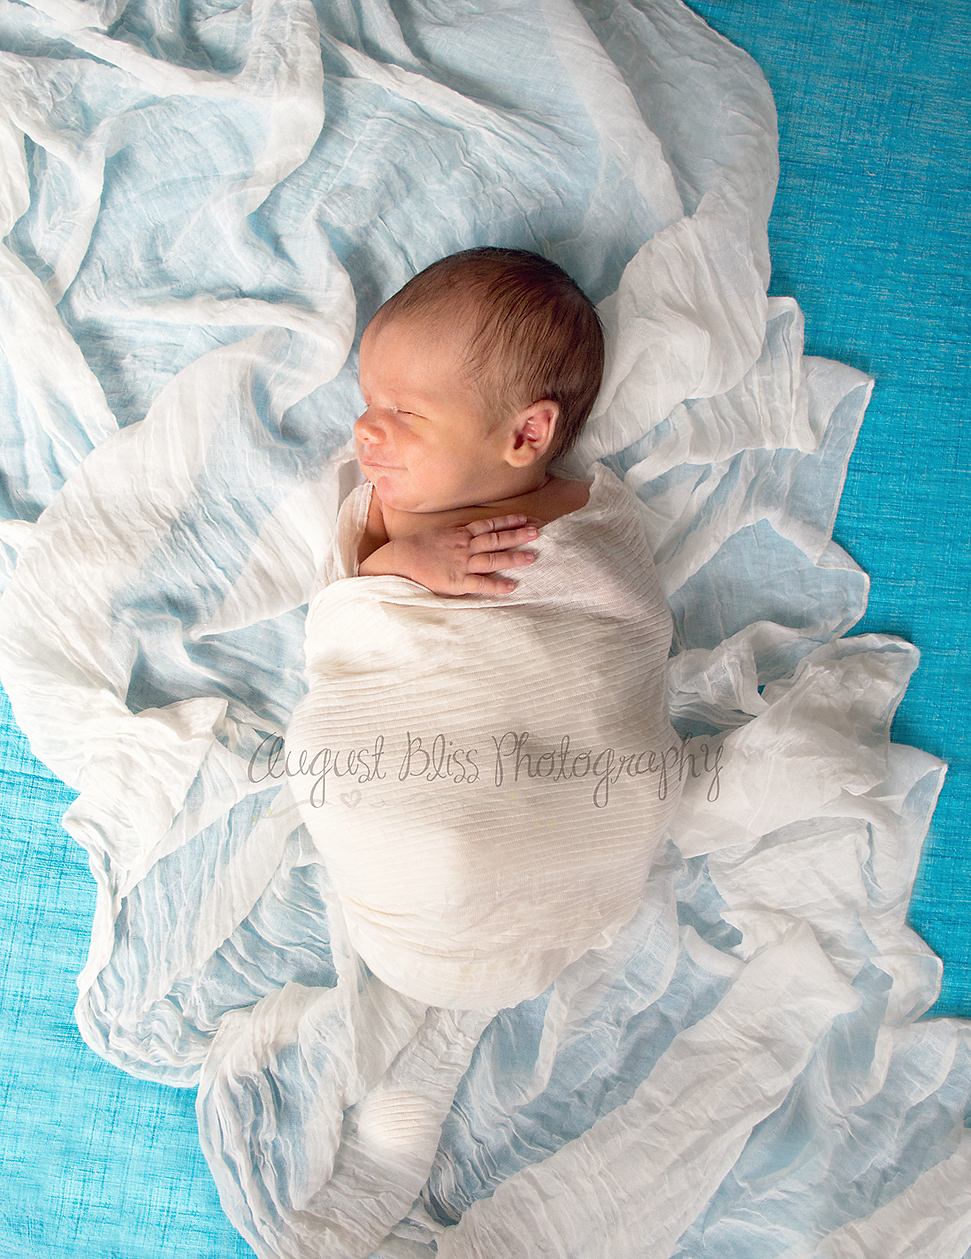 August bliss photography lebanon tennessee babies